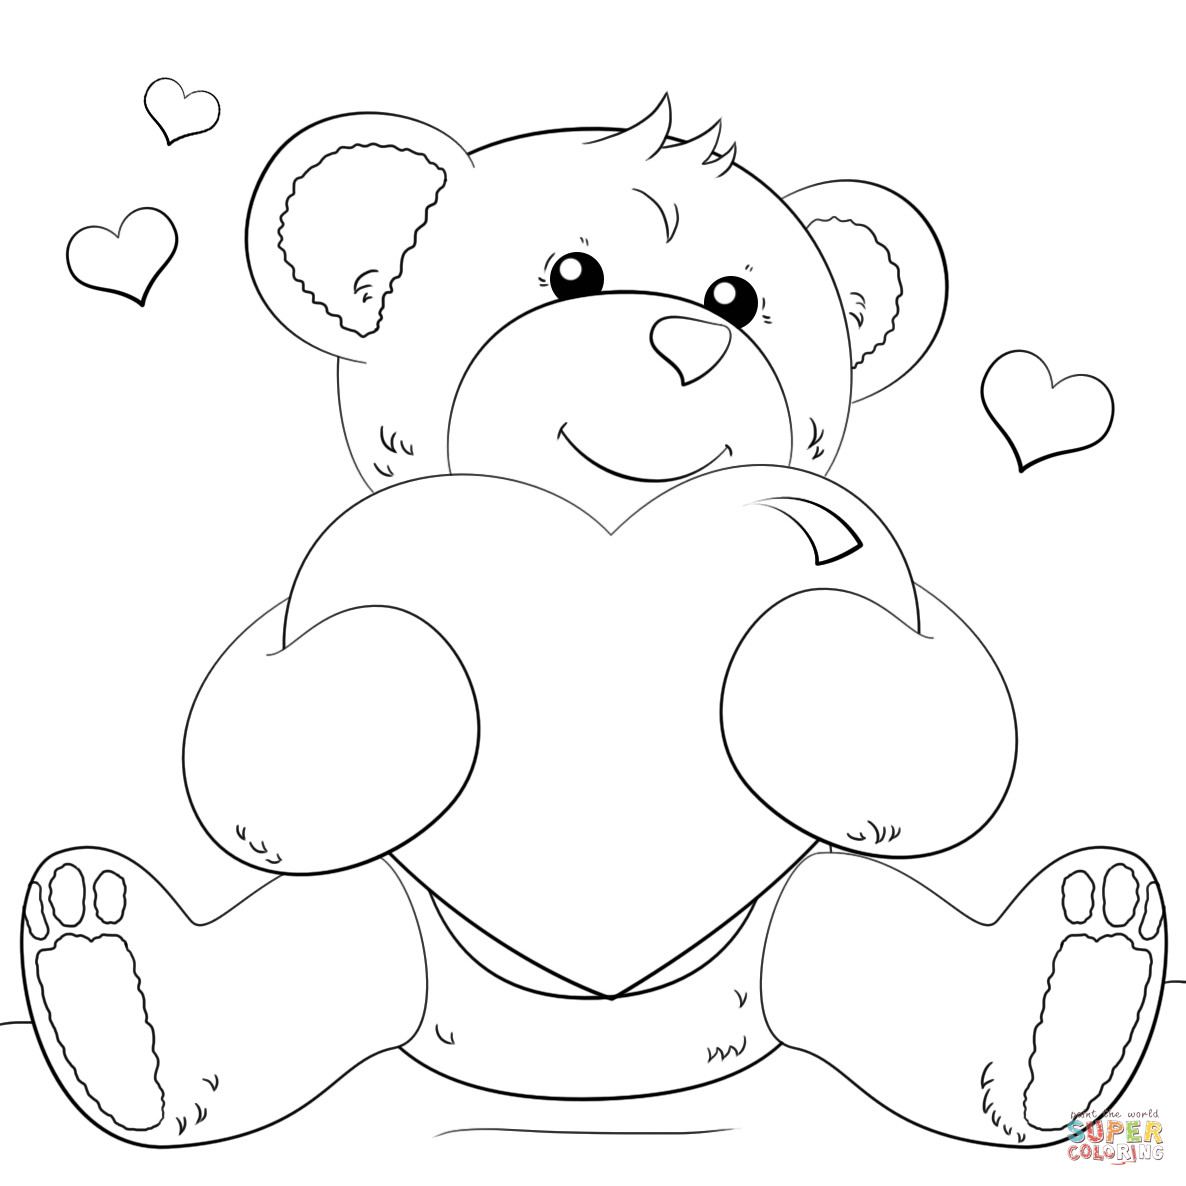 coloring pictures of hearts coloring pictures of hearts pictures coloring of hearts